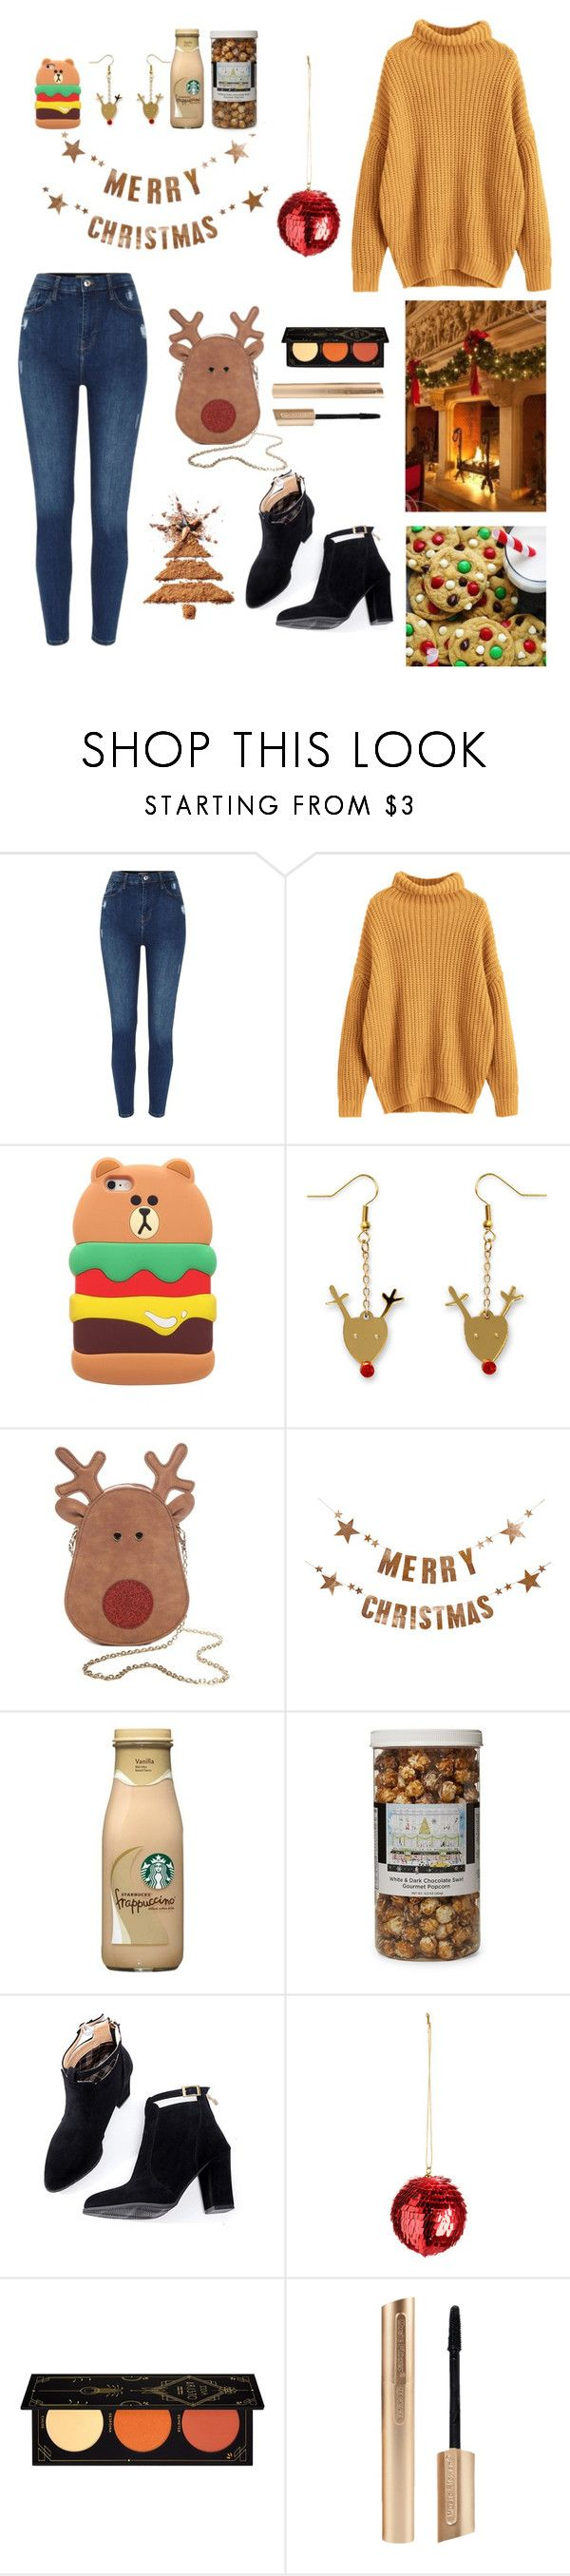 """Christmas Day"" by valley-g ❤ liked on Polyvore featuring True Craft, Bloomingville, The Hampton Popcorn Company and ZOEVA"